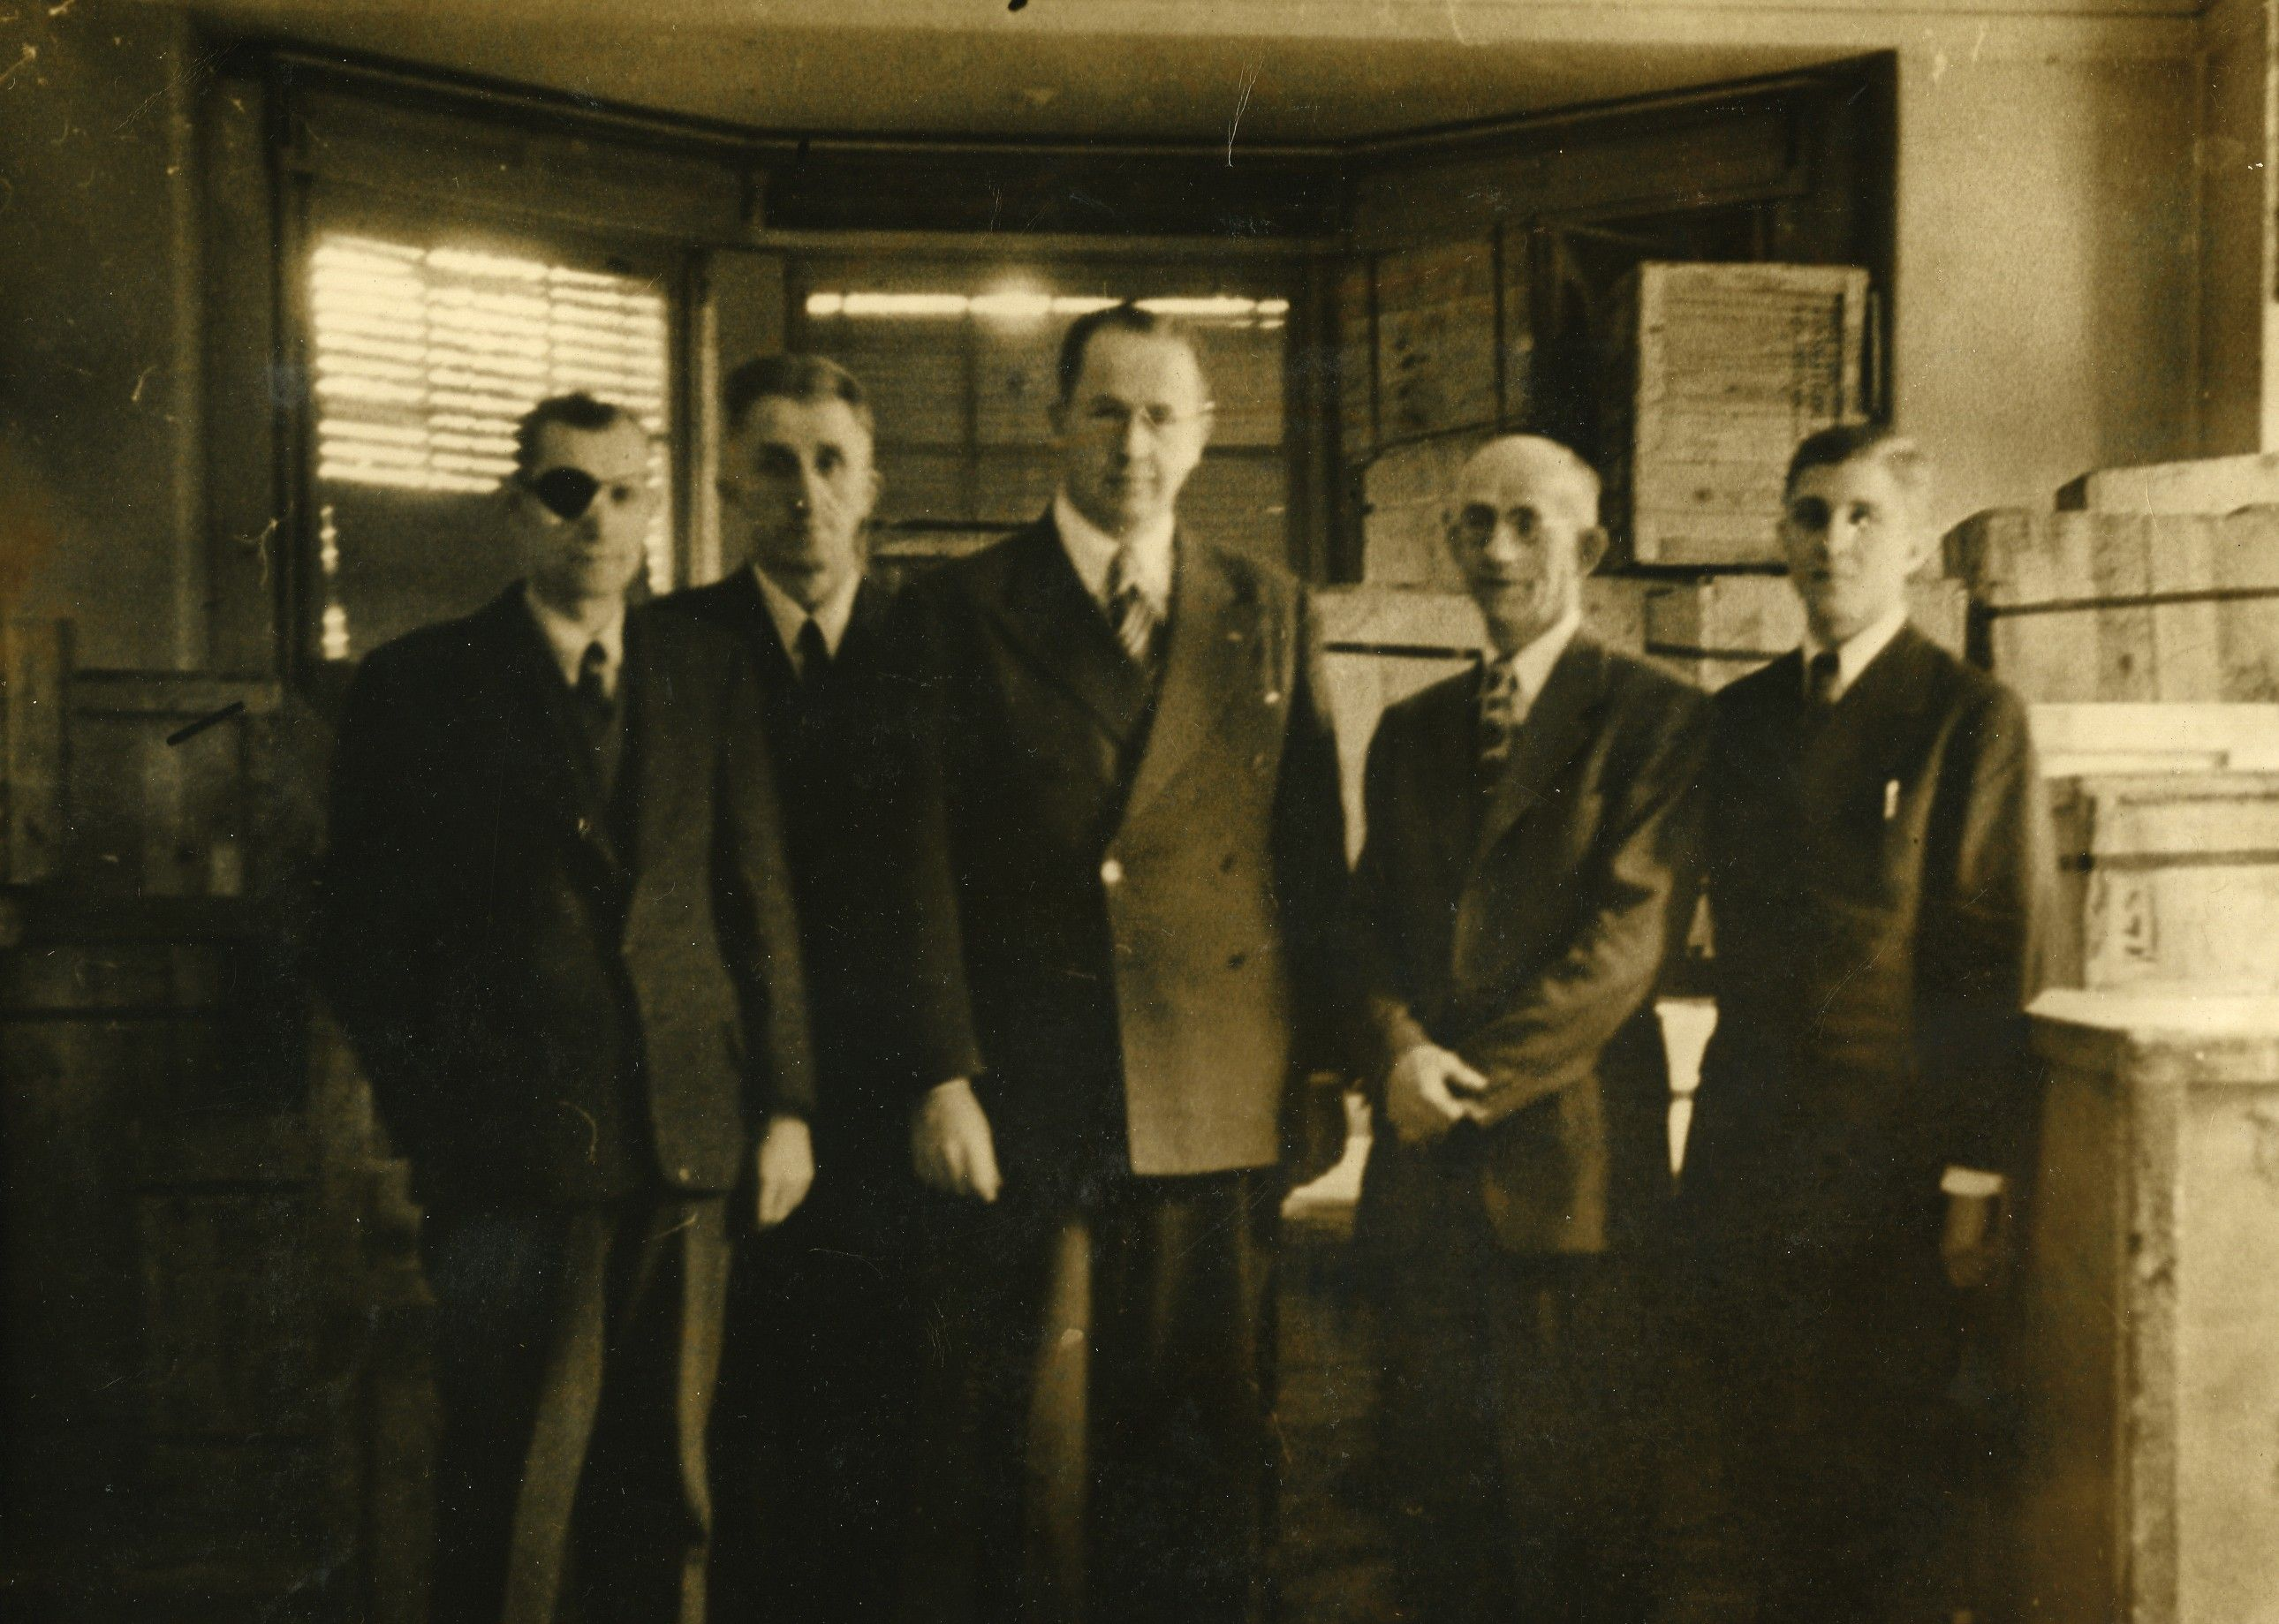 President Ezra Taft Benson standing with other men during a visit to the European Mission in 1946.